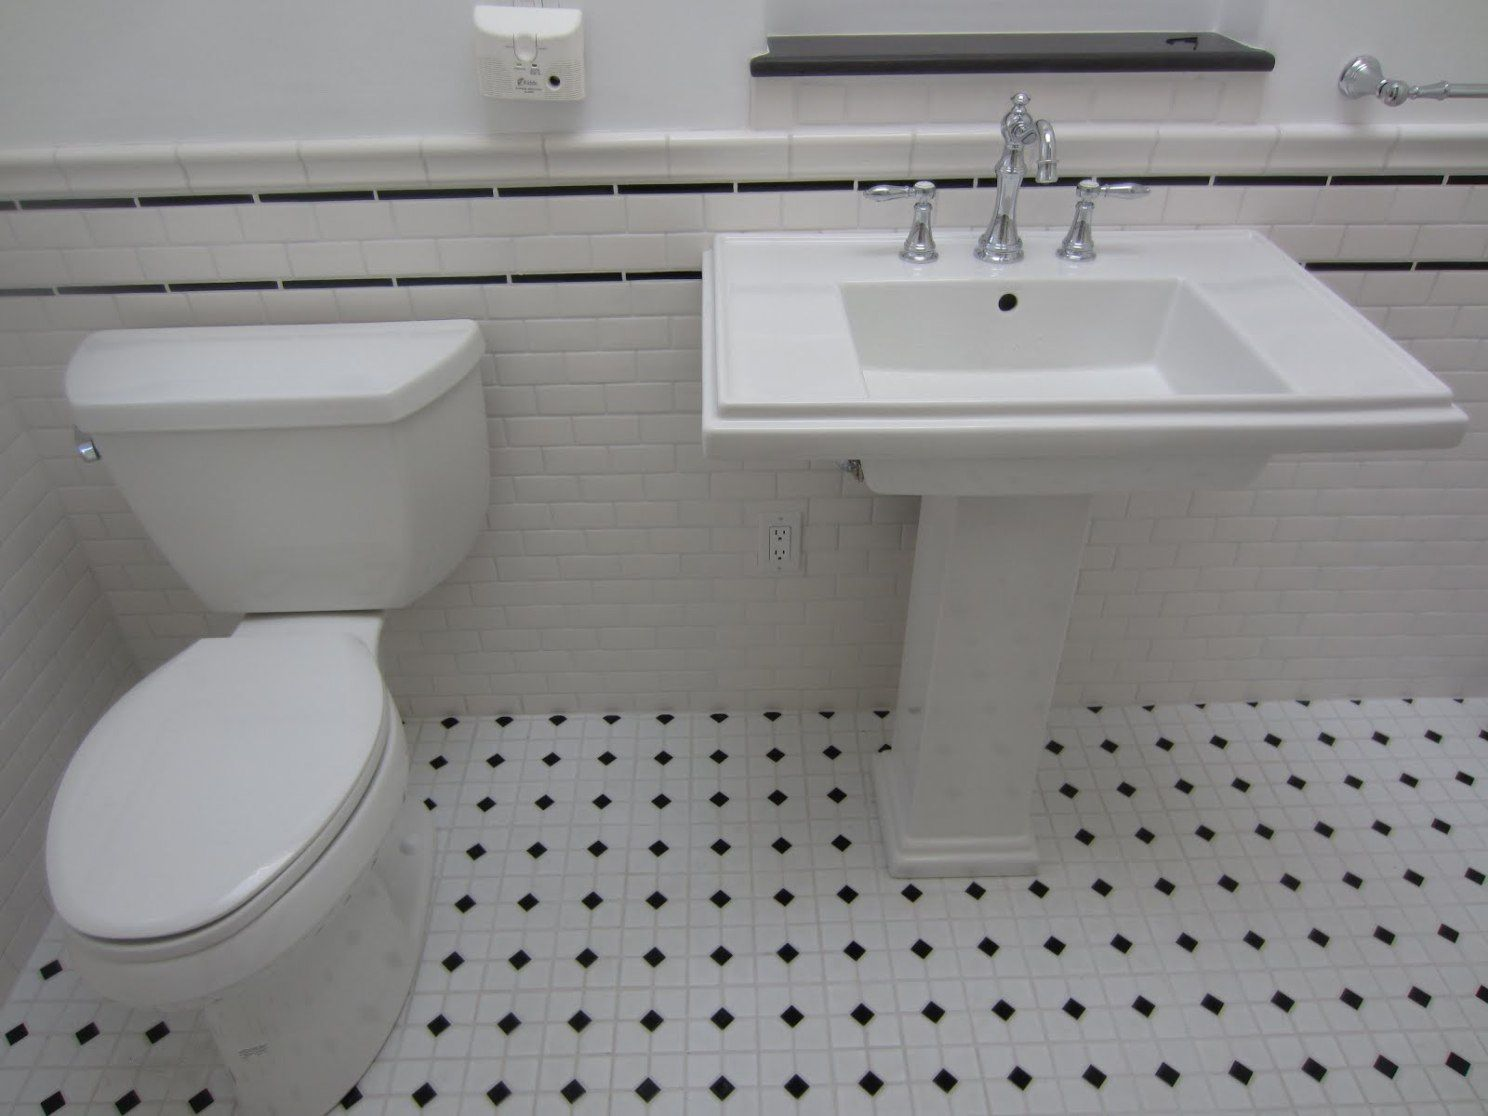 Best Mosaic Bathroom Floor Tiles Ideas And Tips You Will Read This